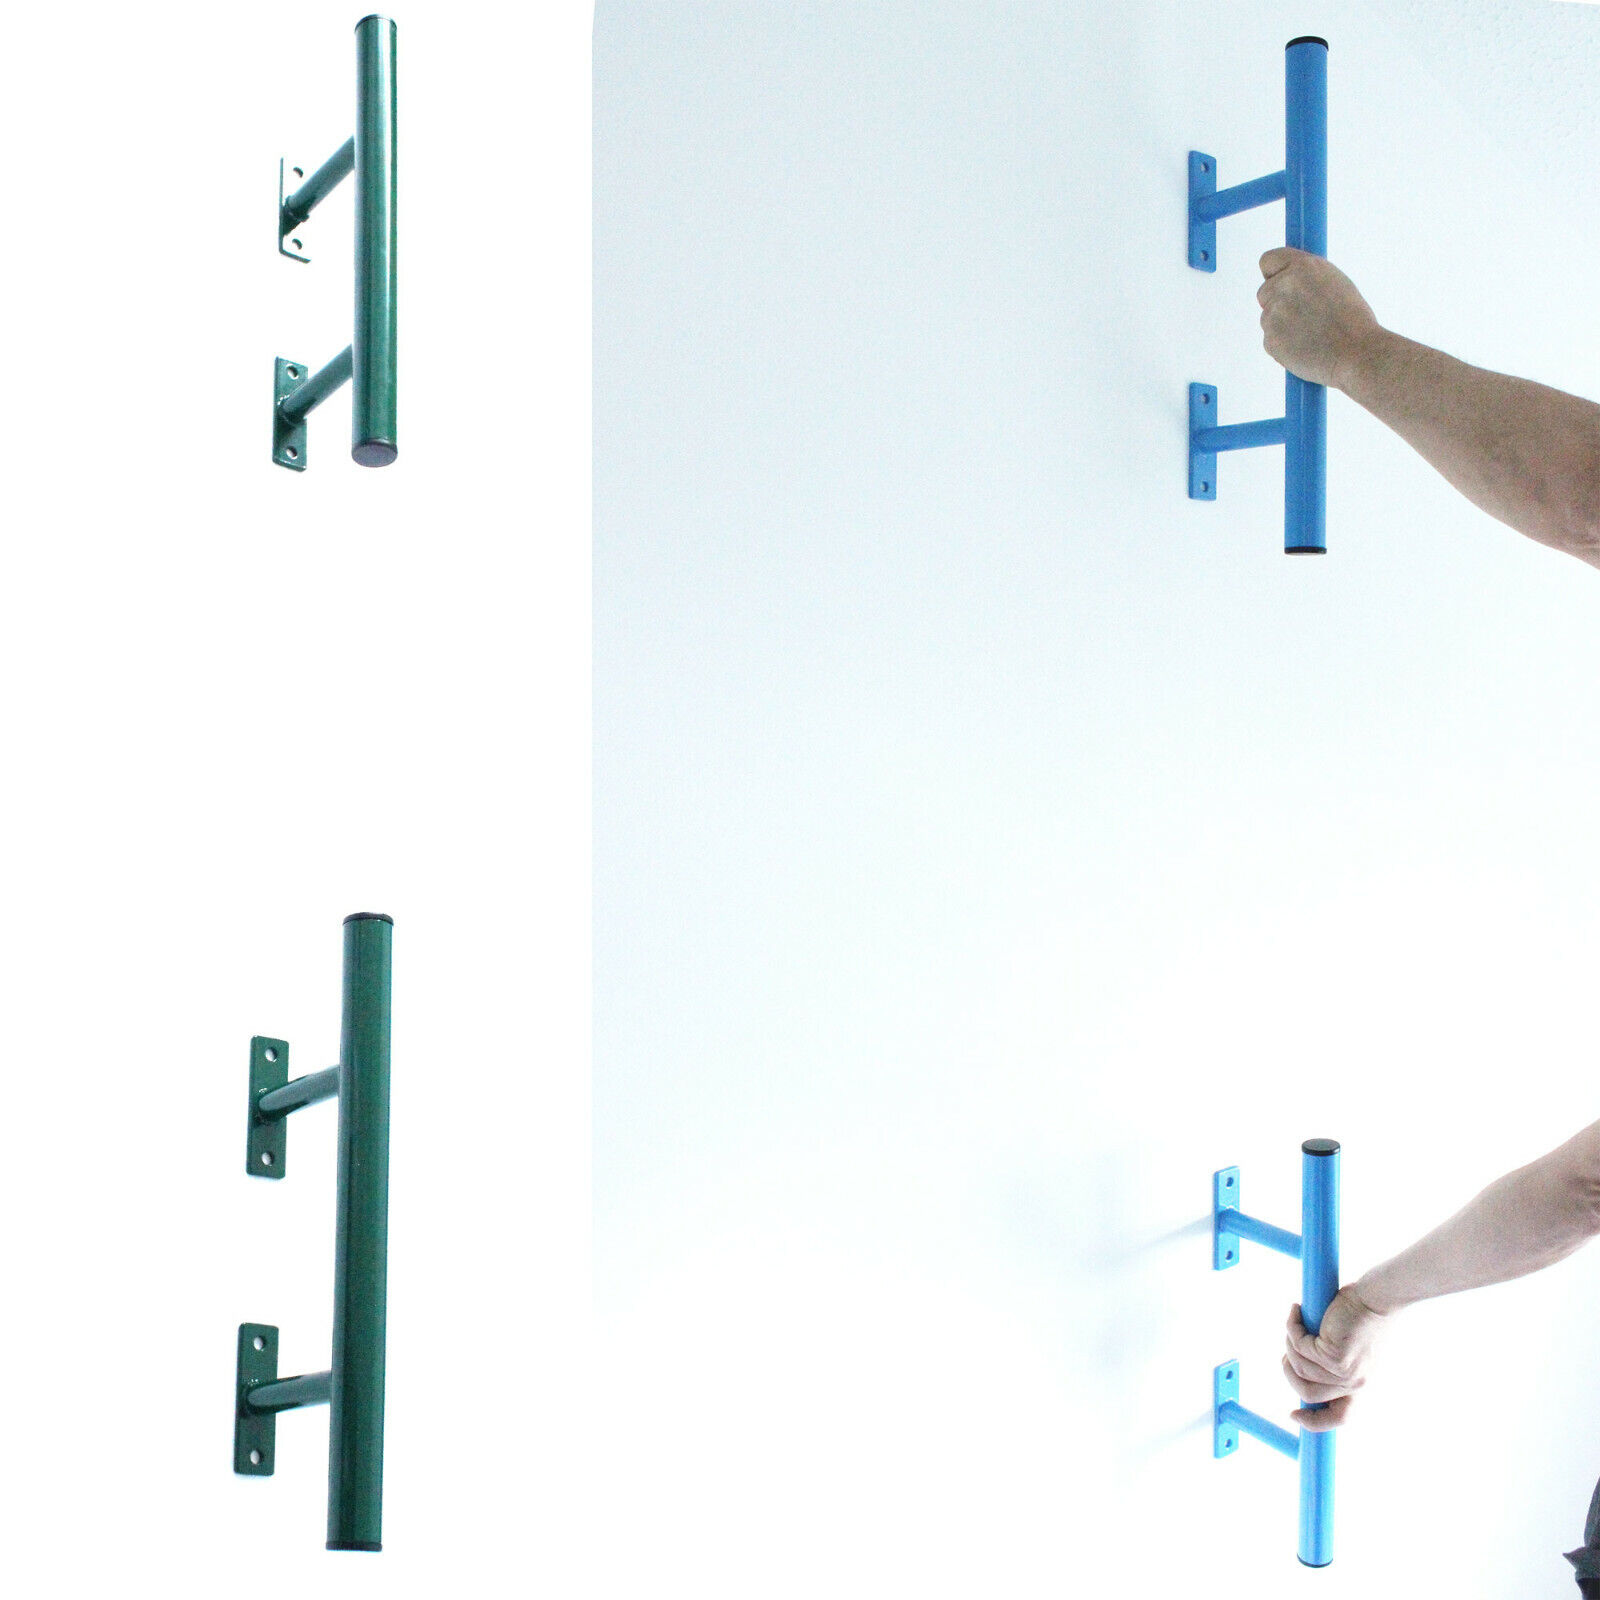 Set of Steel Bars For Human Flags and Callisthenics Training in Green or blueee